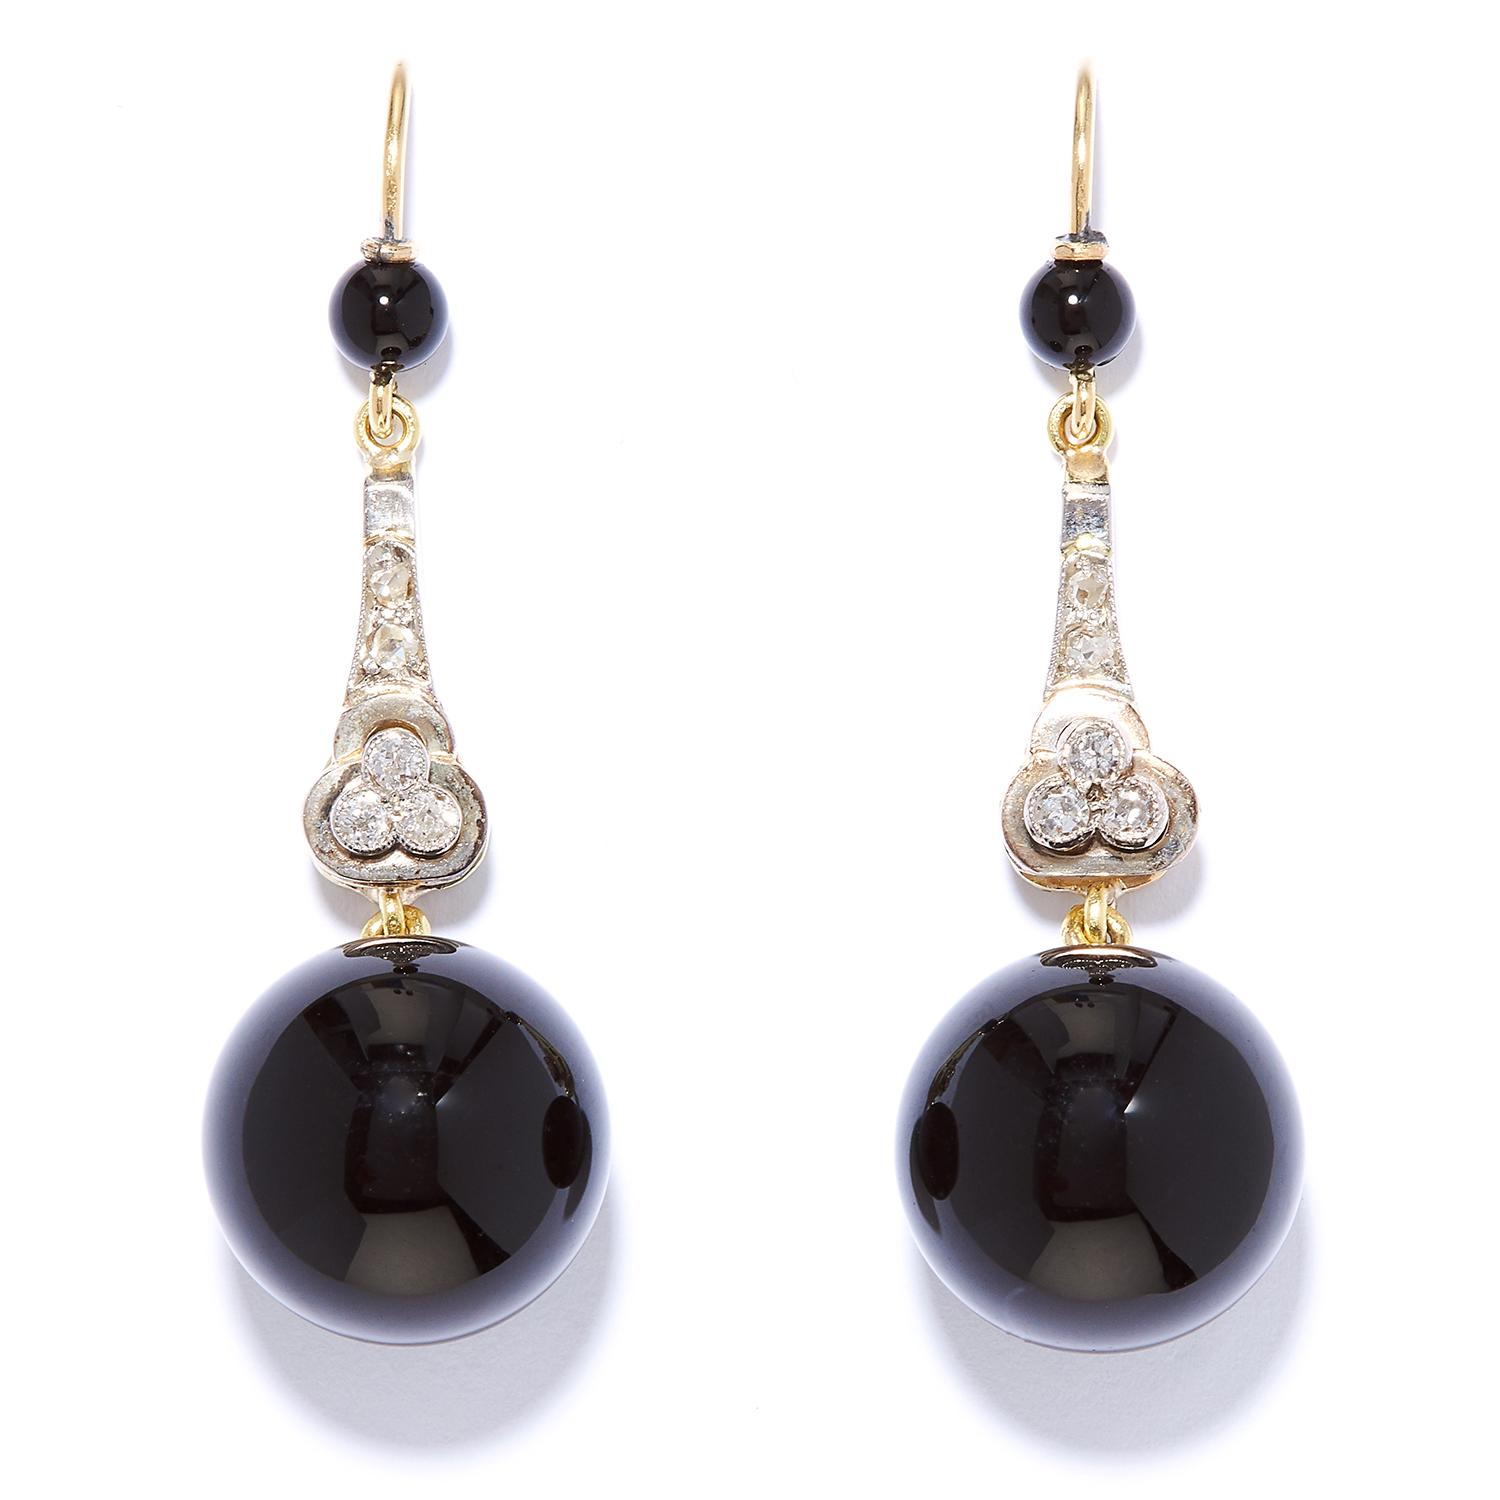 ART DECO ONYX AND DIAMOND DROP EARRINGS in high carat yellow gold and platinum, suspending